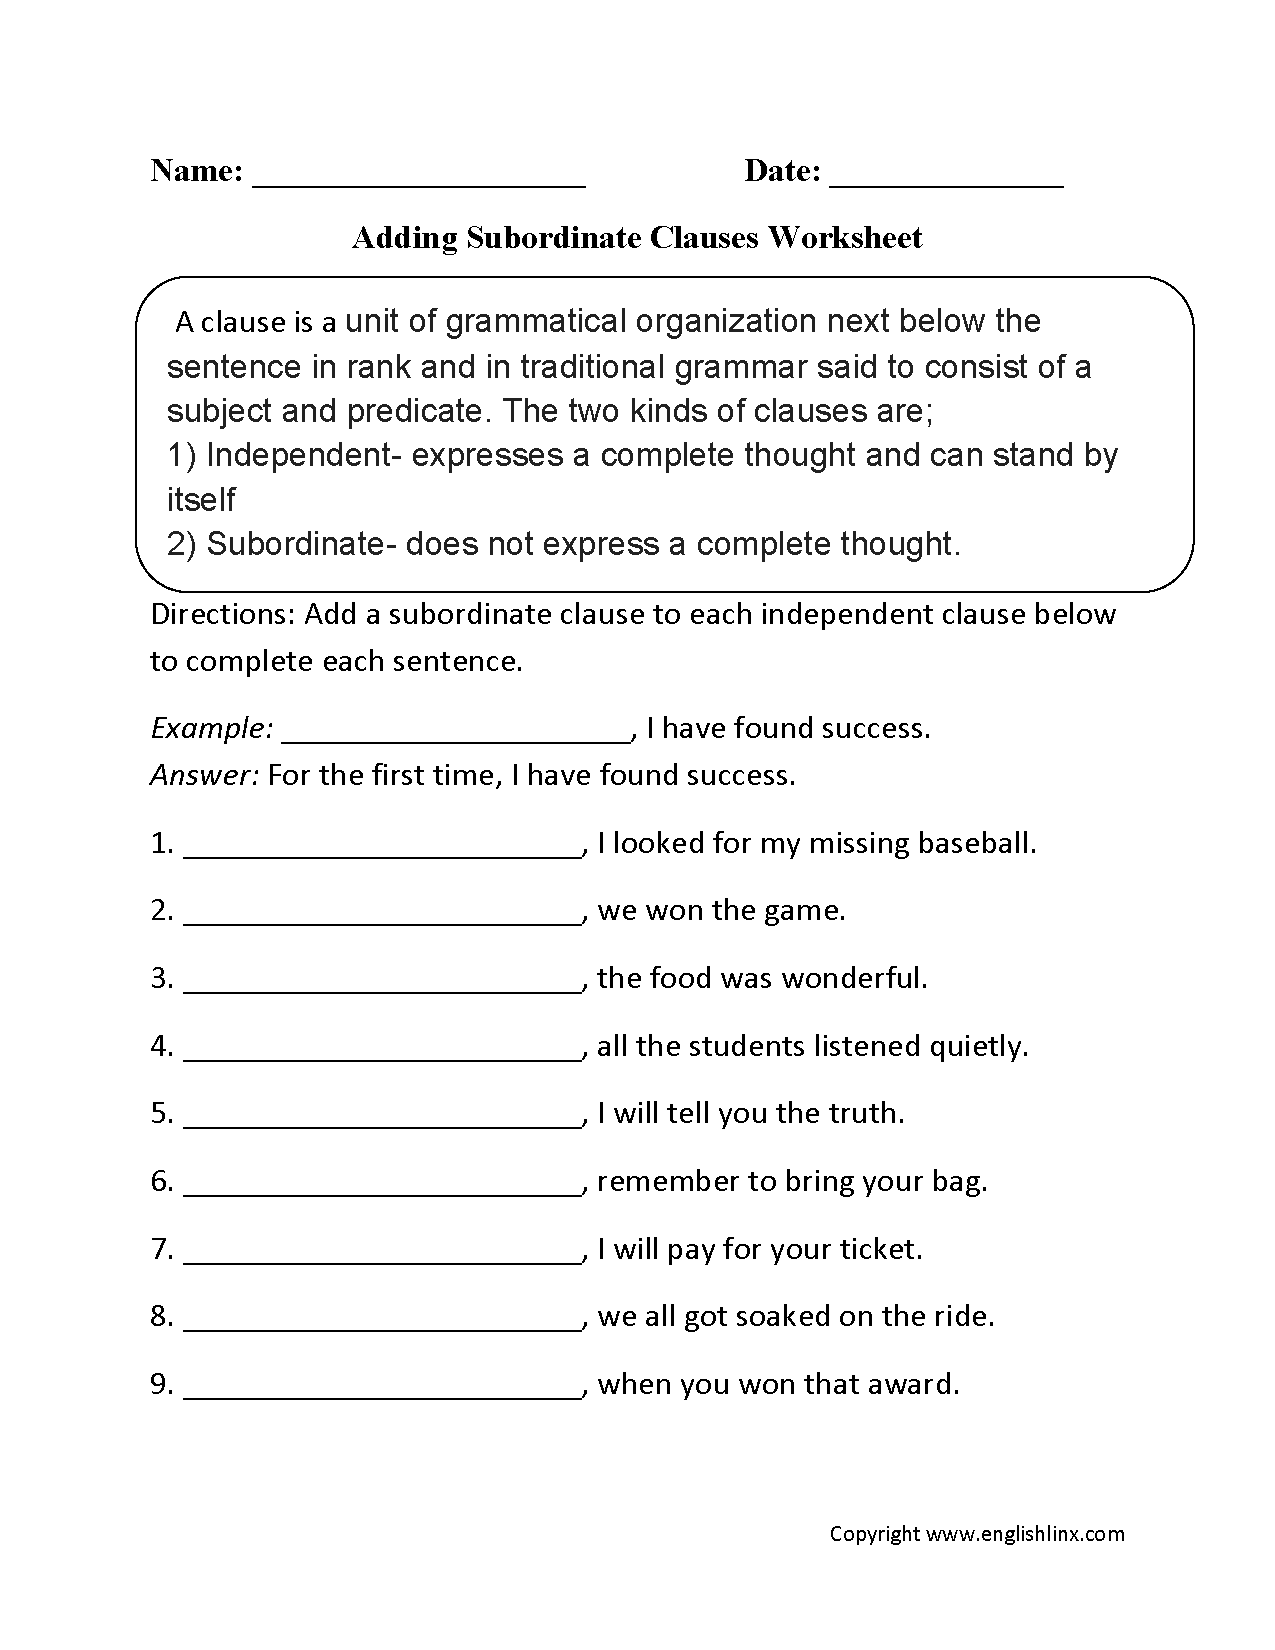 Adding Subordinate Clauses Worksheet – Independent and Subordinate Clauses Worksheet